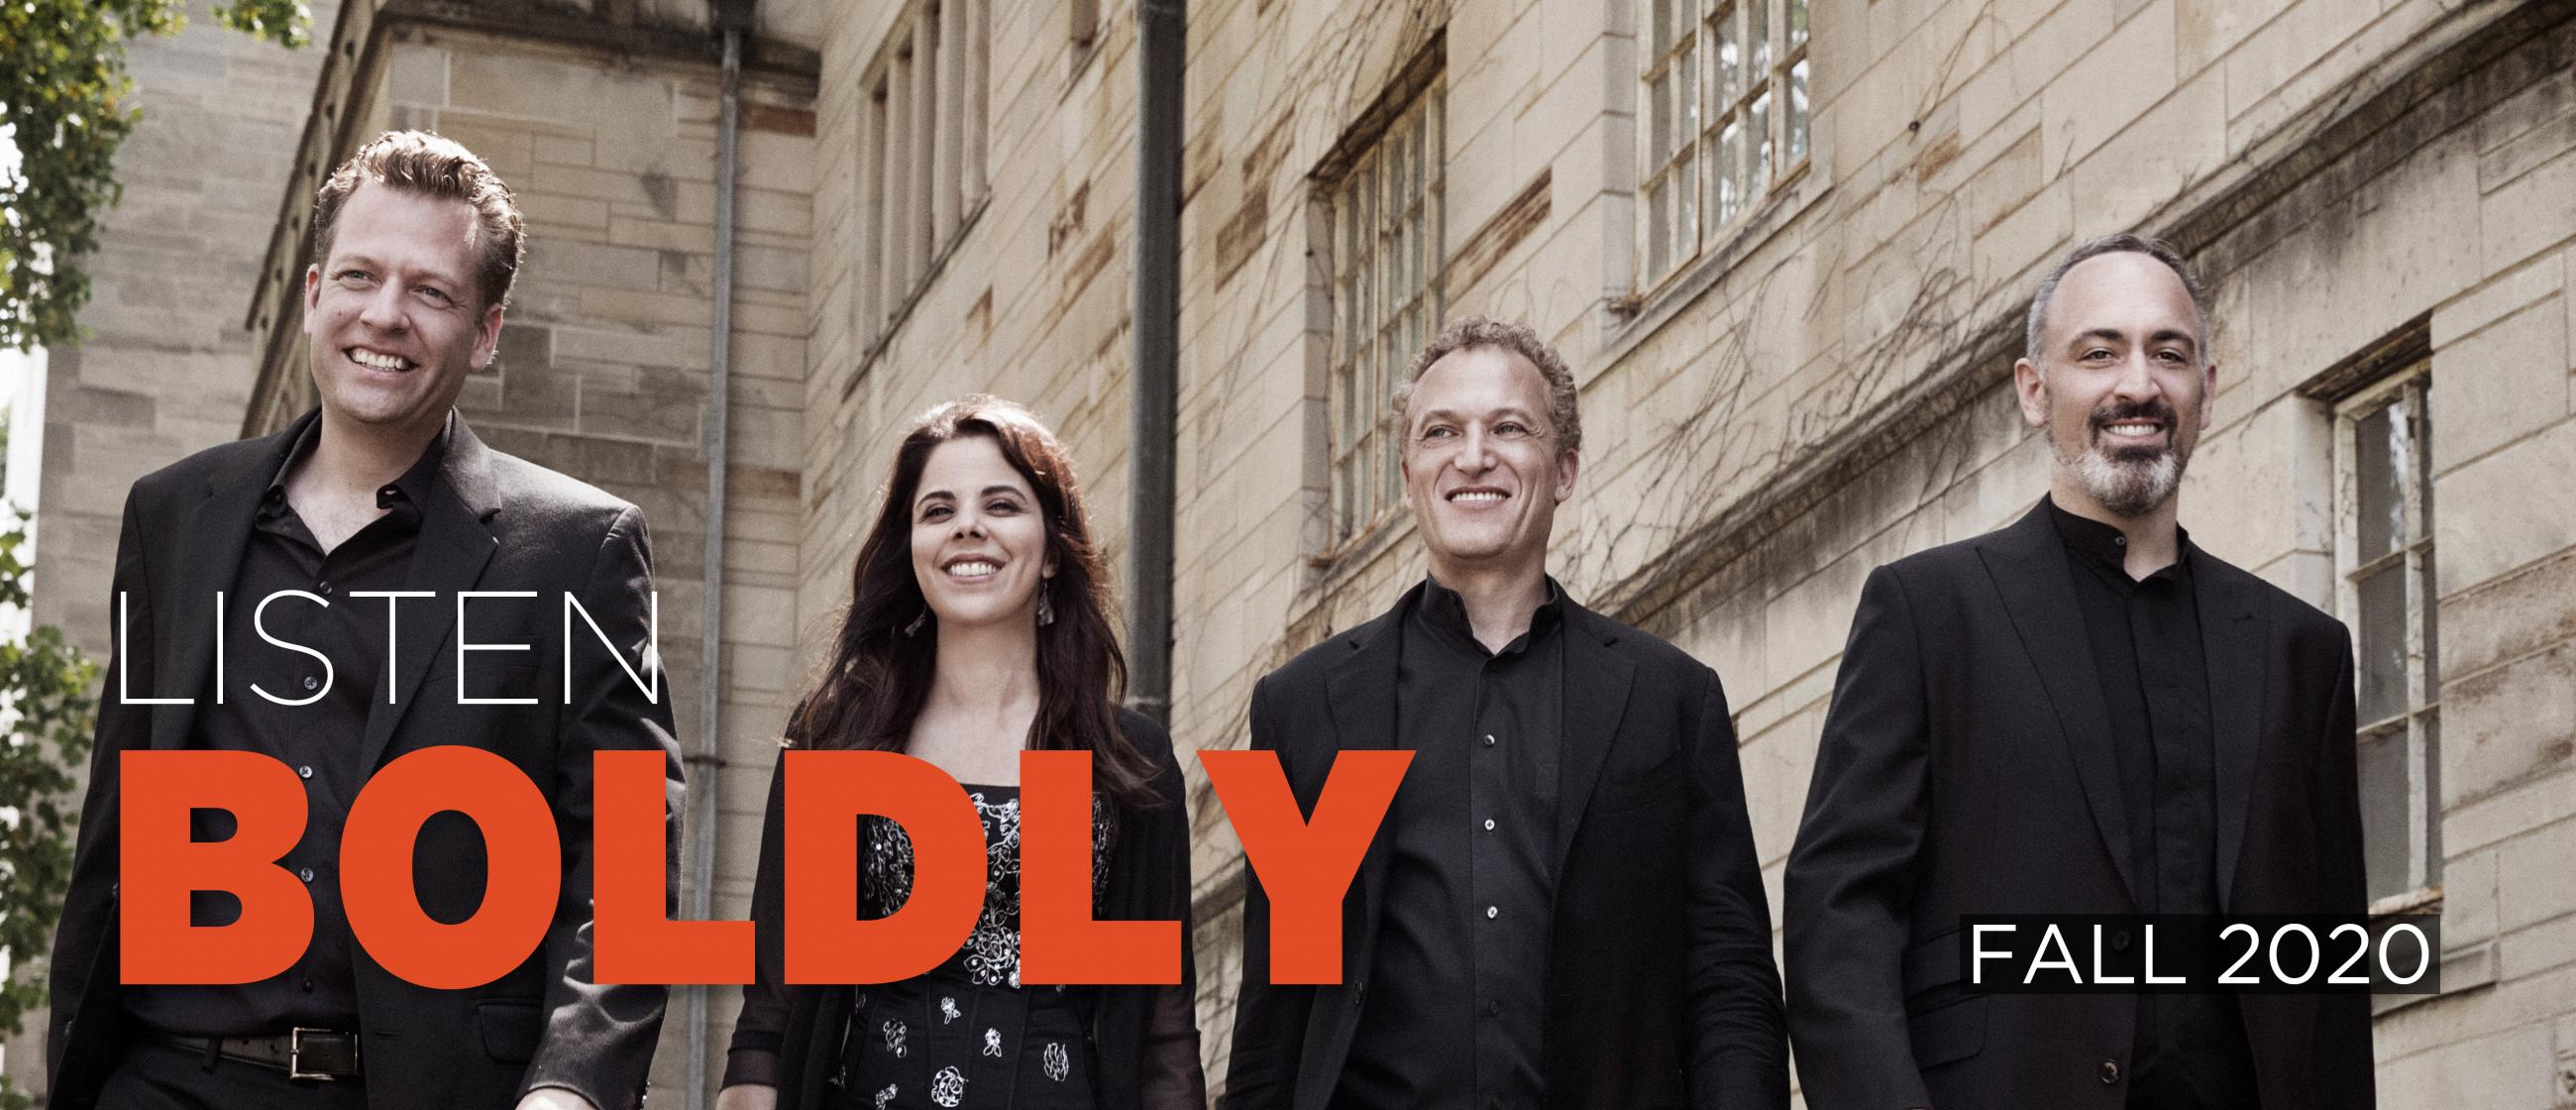 """Image of the four members of the Pacifica Quartet in front of a stone building with the text """"Listen Boldly"""" and """"Fall 2020"""""""